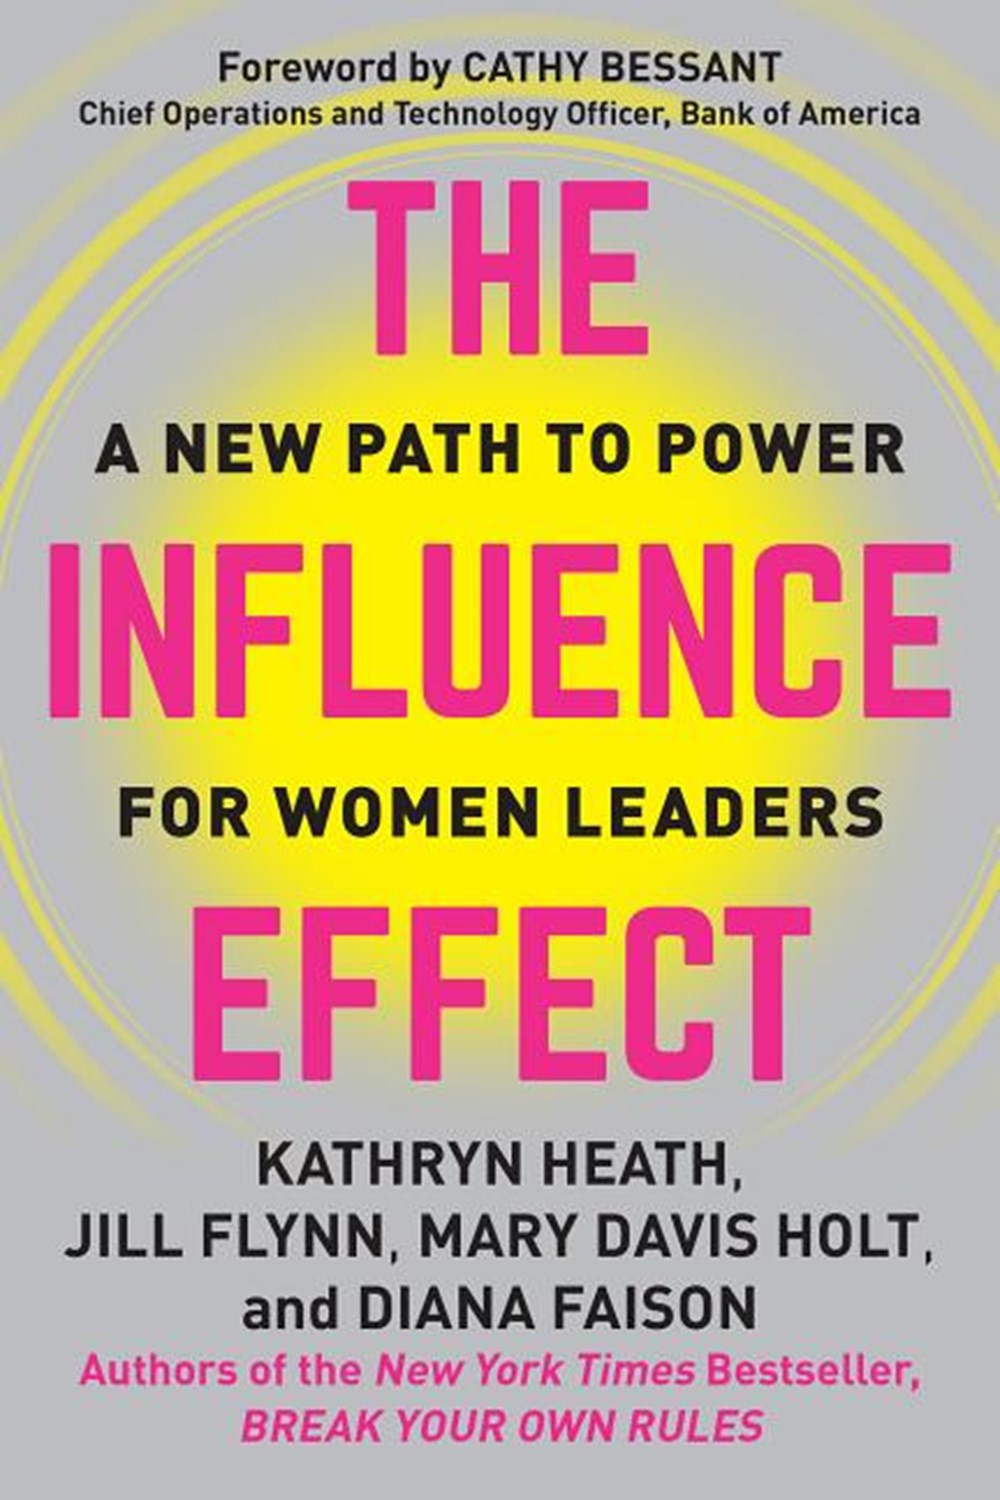 Influence Effect: A New Path to Power for Women Leaders